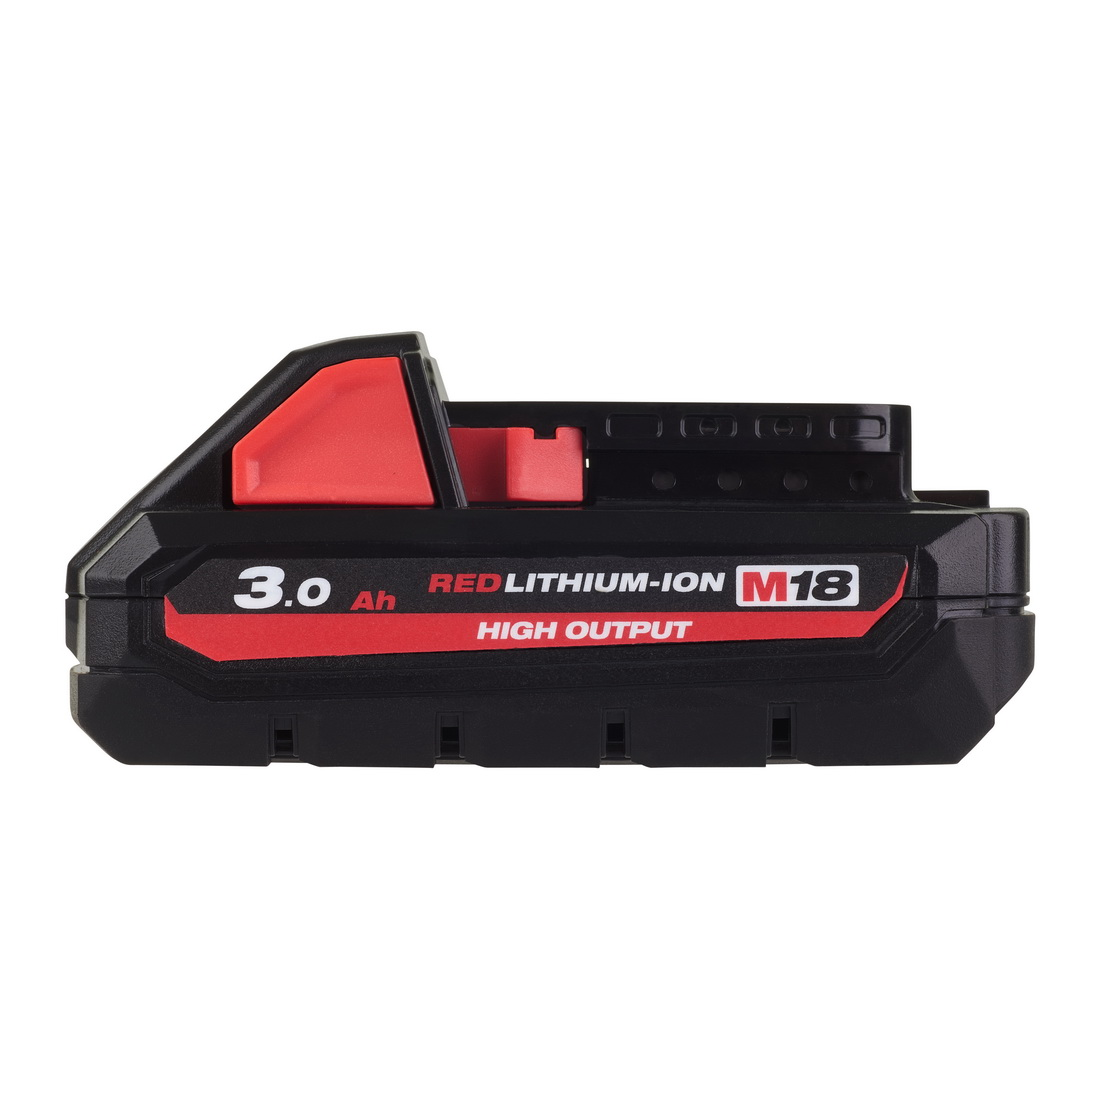 M18 RED LITHIUM-ION 18V 3Ah High Output Battery